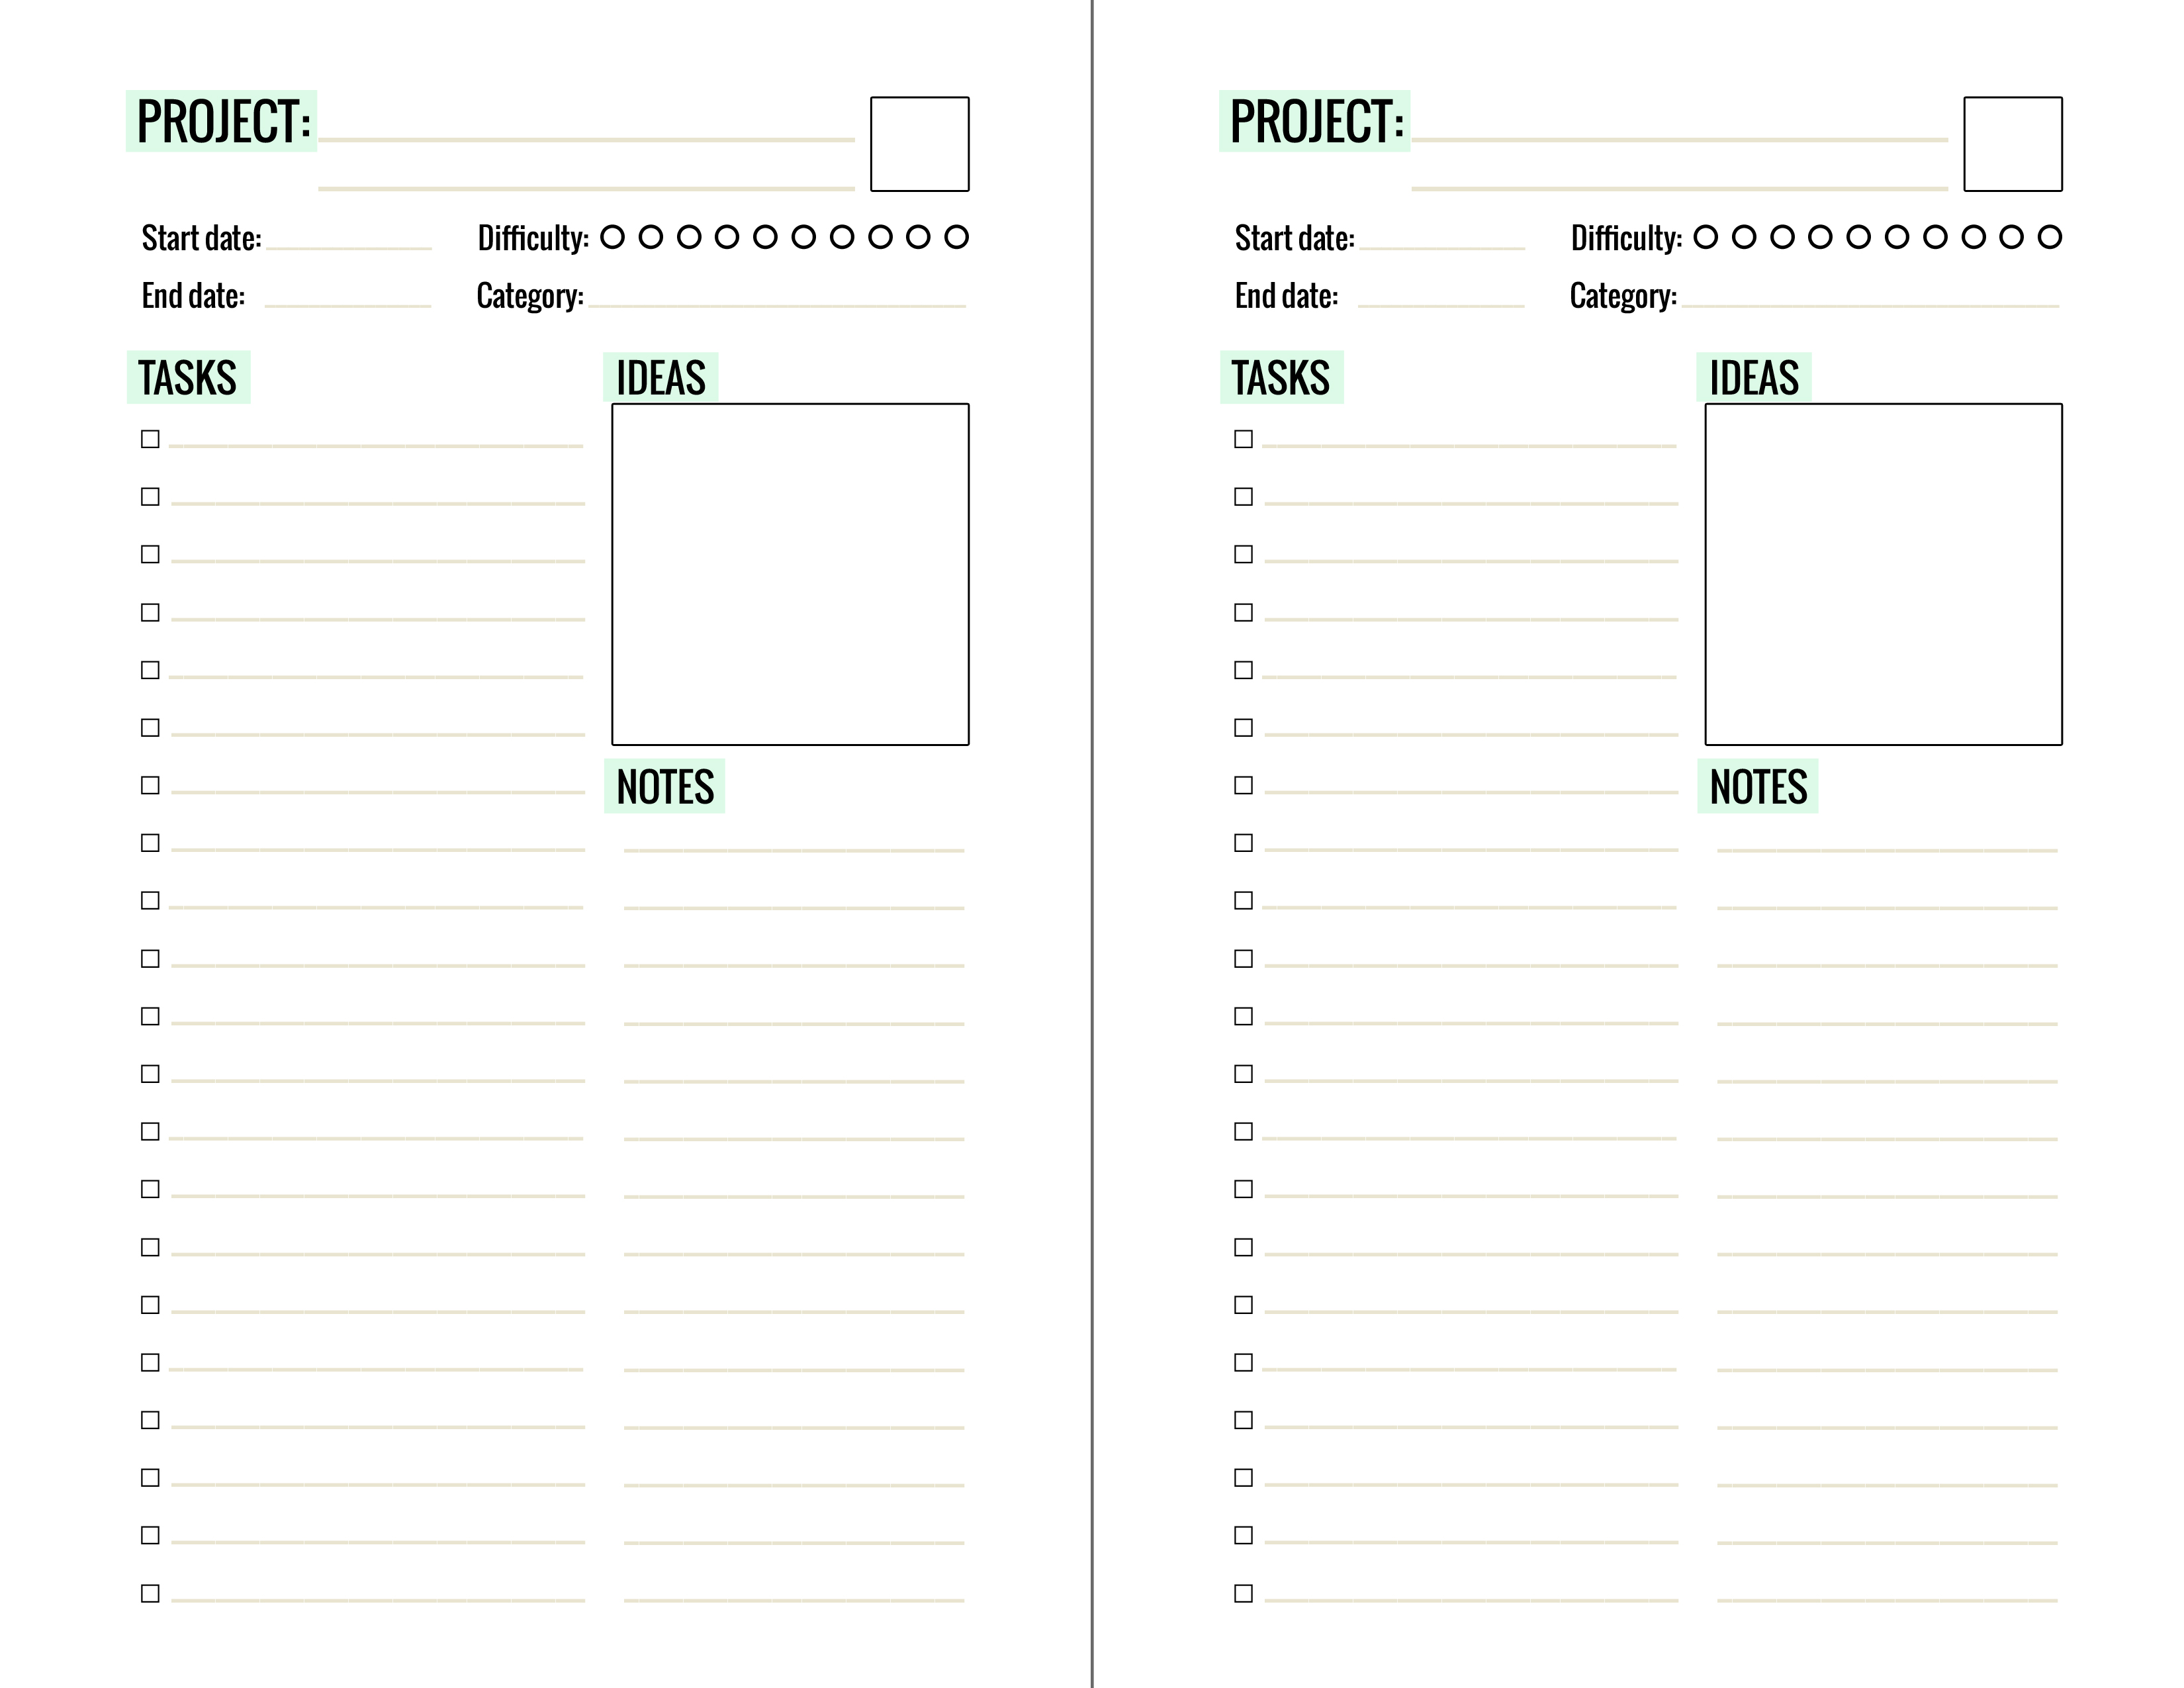 photo relating to Free Printable Project Planner titled Free of charge Printable Task Planner Webpage - Paper and Surroundings